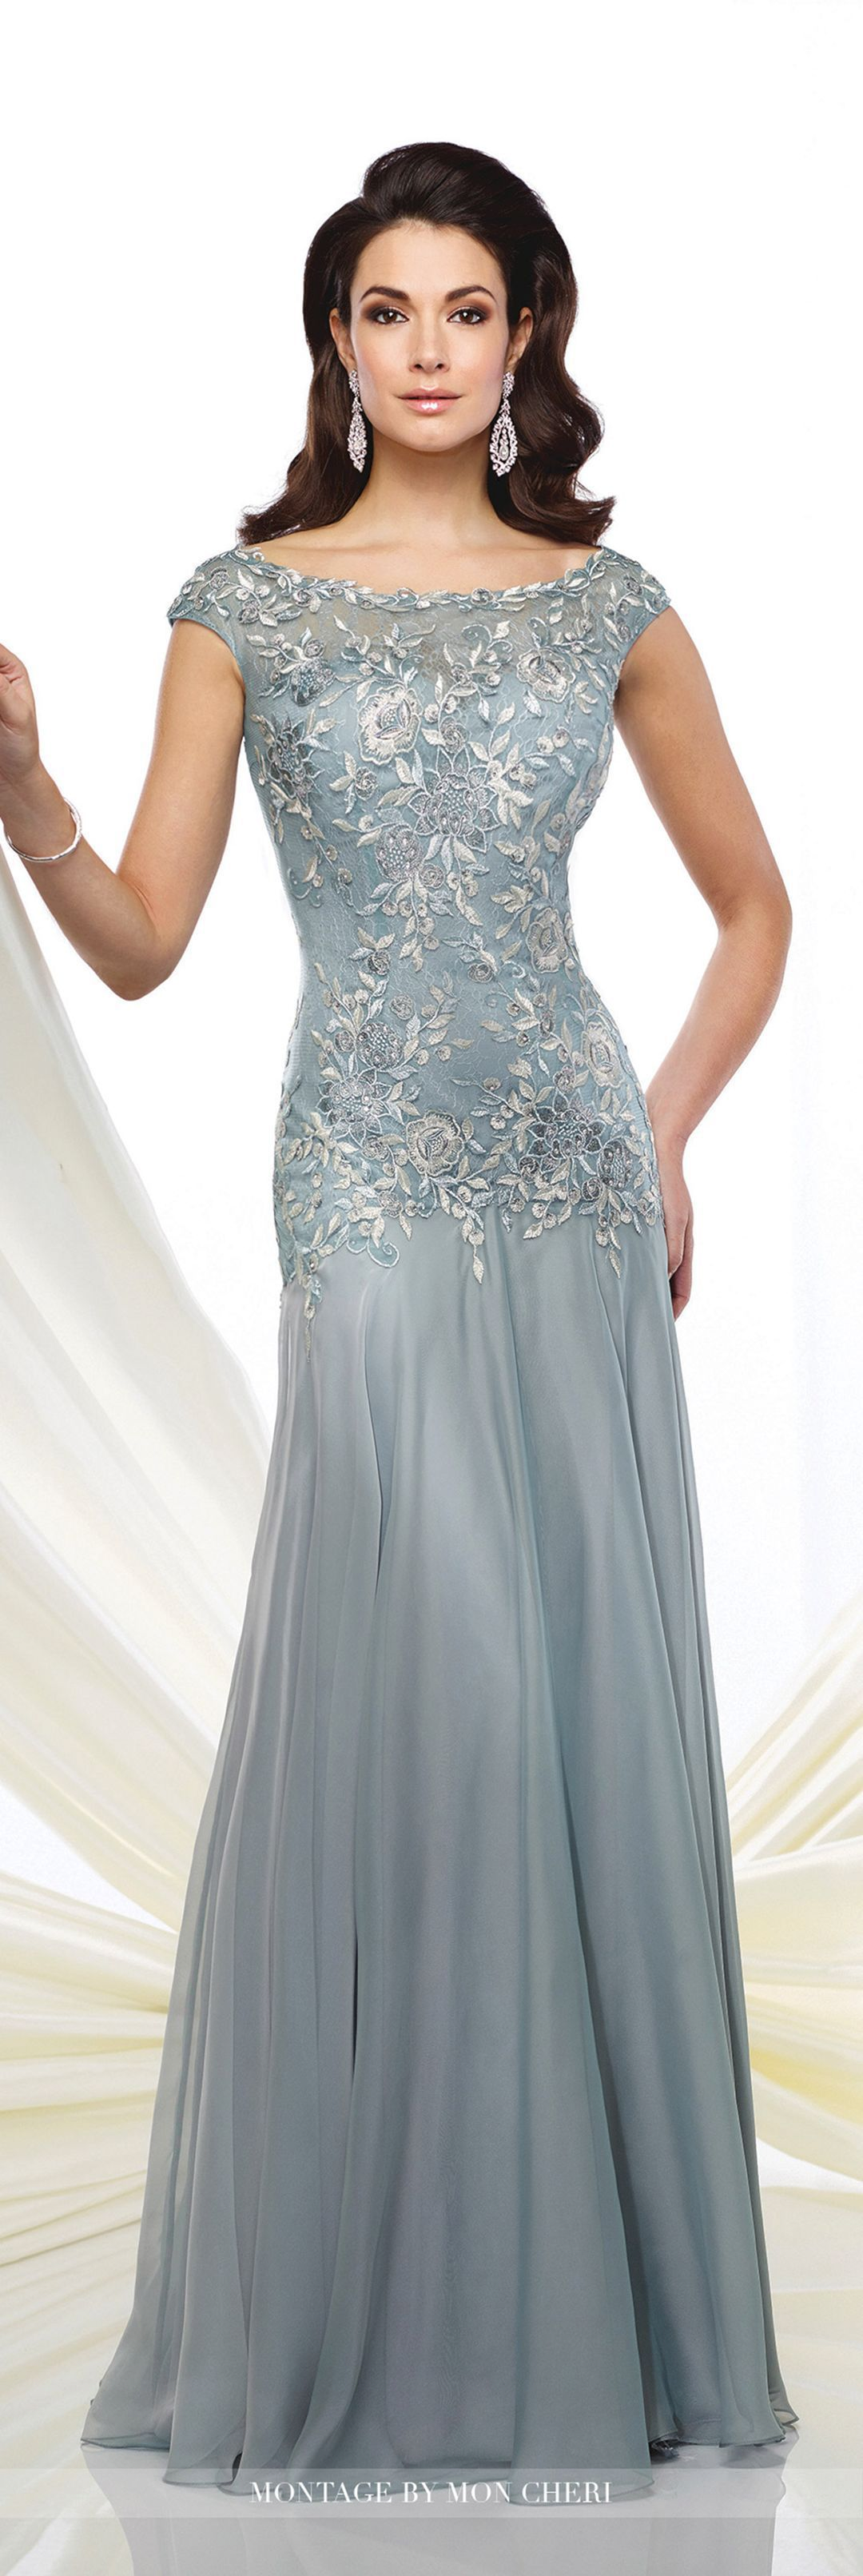 55+ Best Mother of the Bride and Groom Dresses Ideas | Bride dresses ...